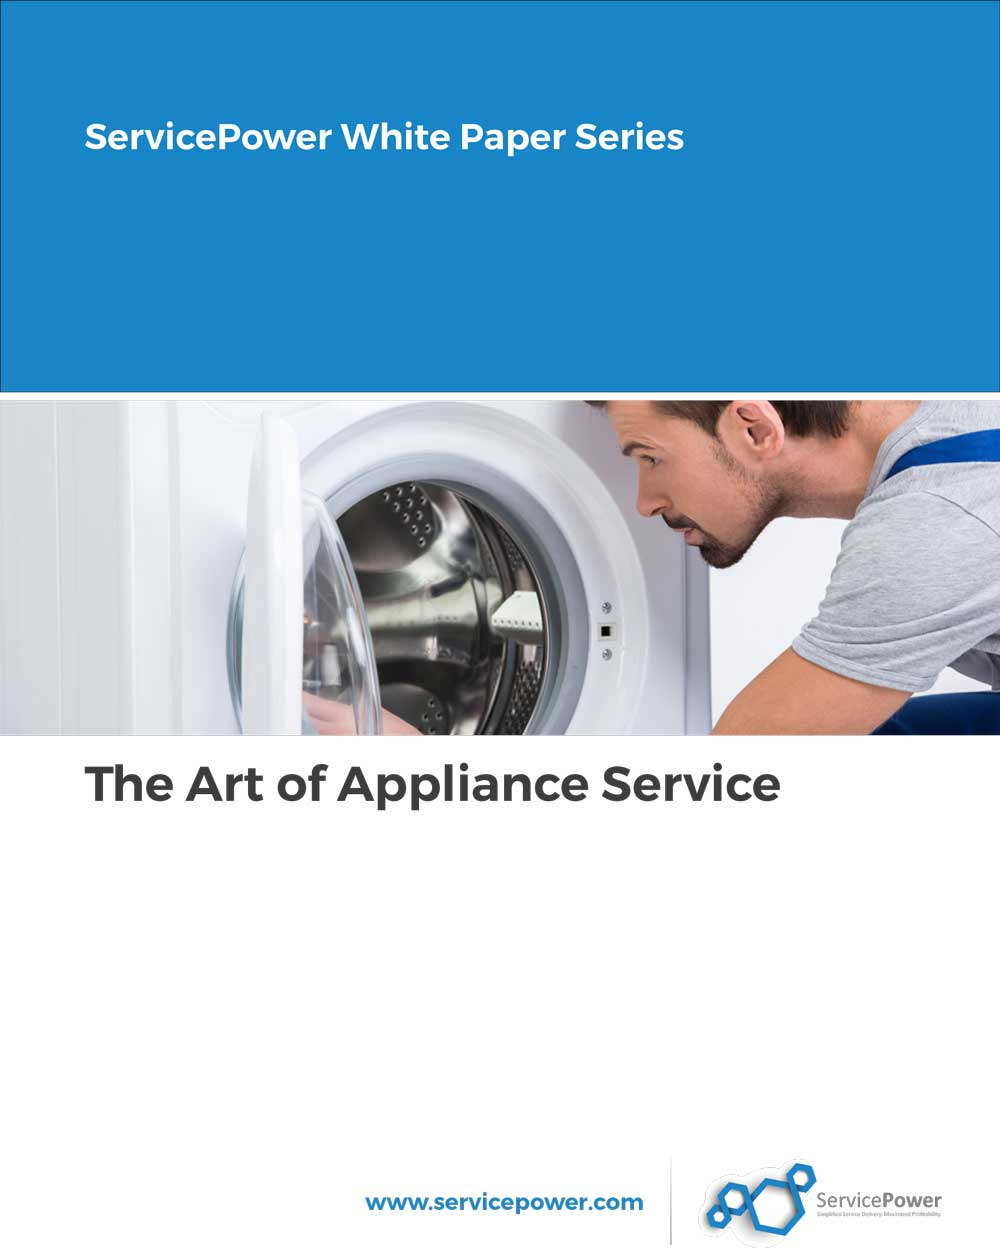 Download: The Art of Appliance Service